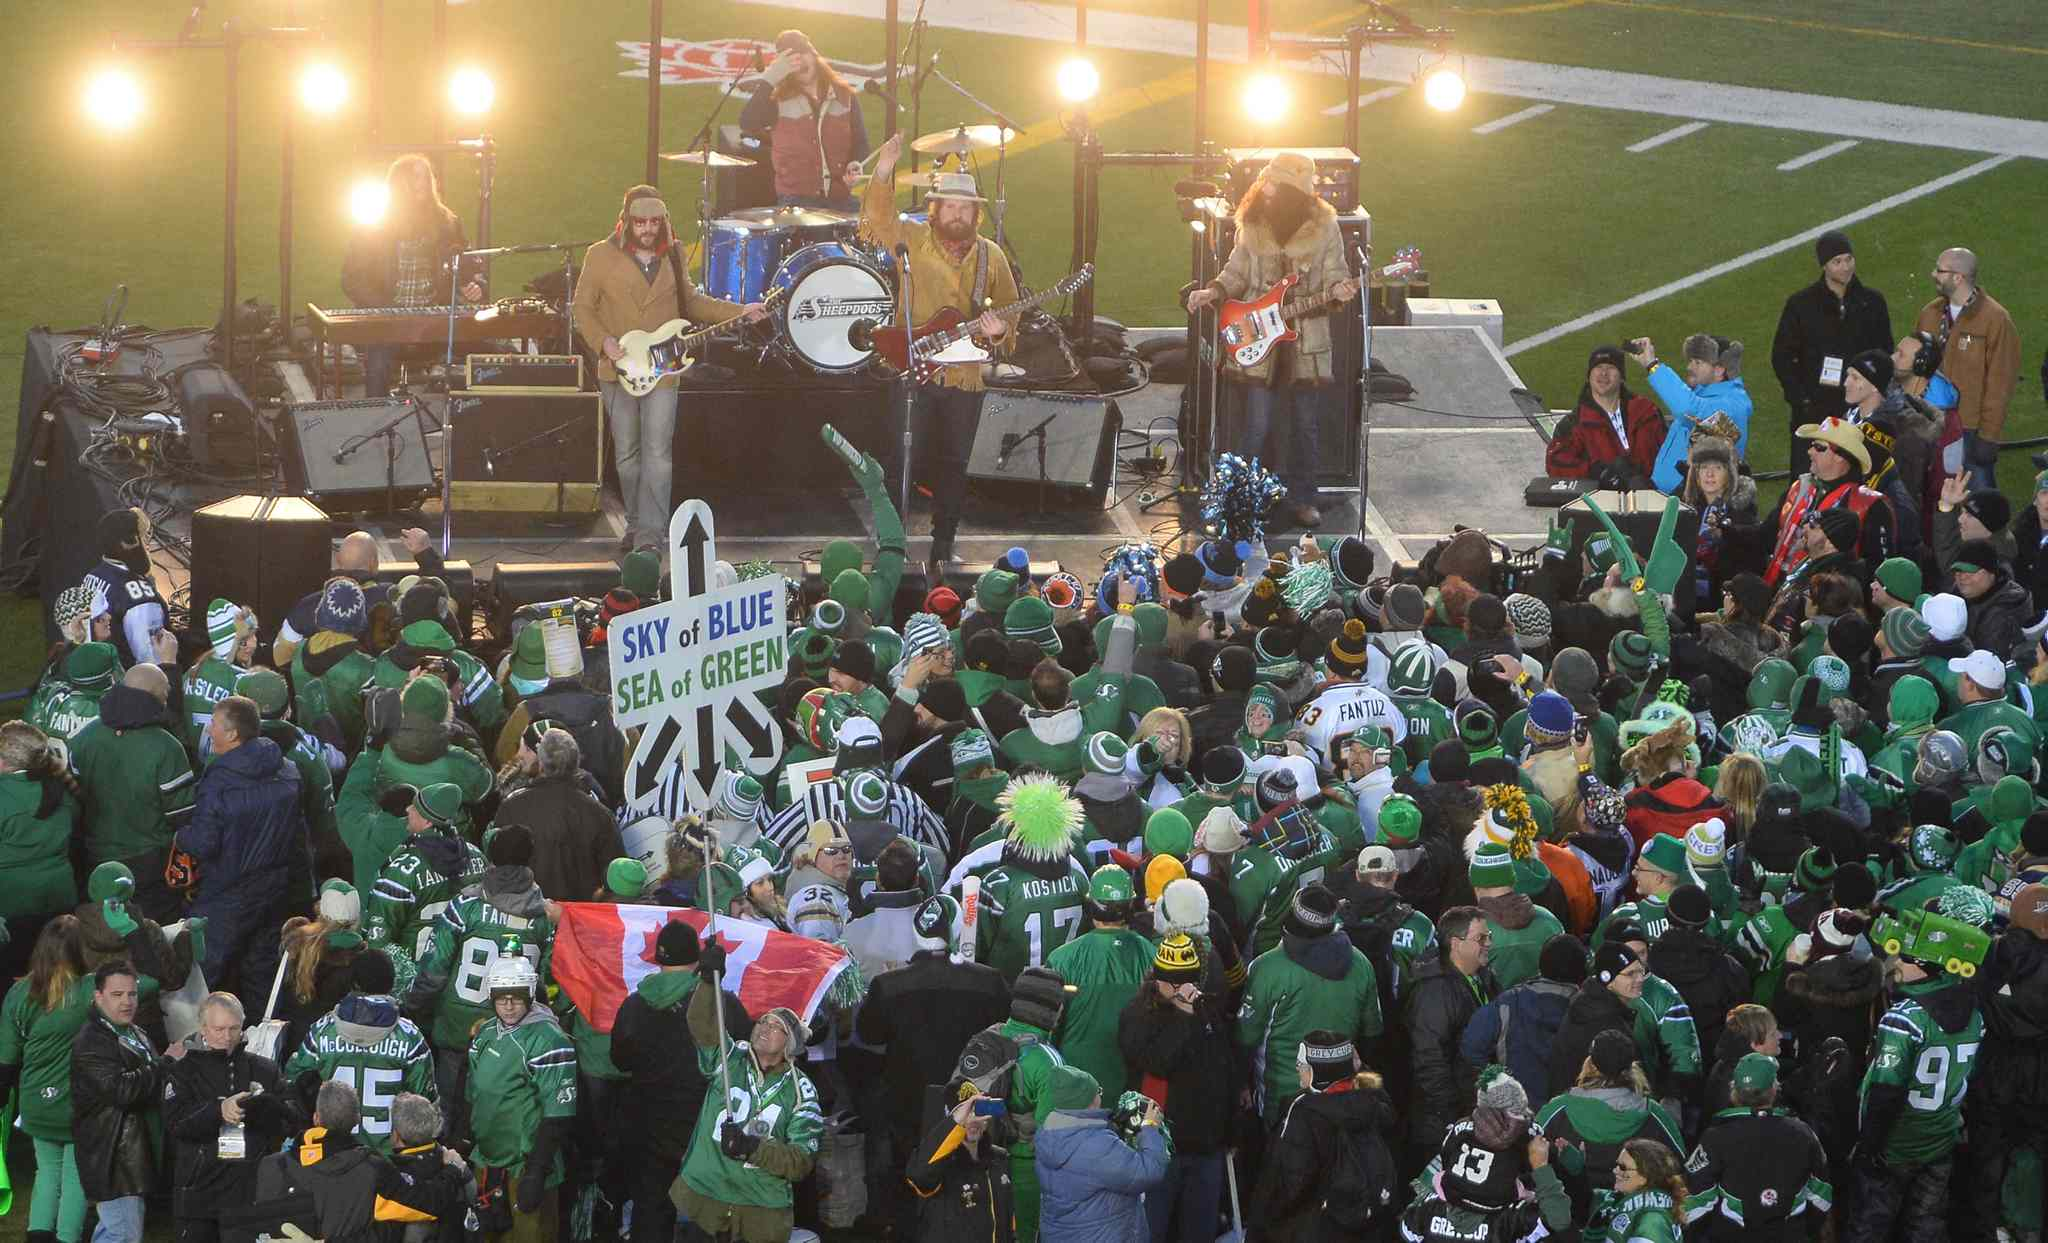 The Sheepdogs perform during pre-game ceremonies at the Grey Cup Sunday.